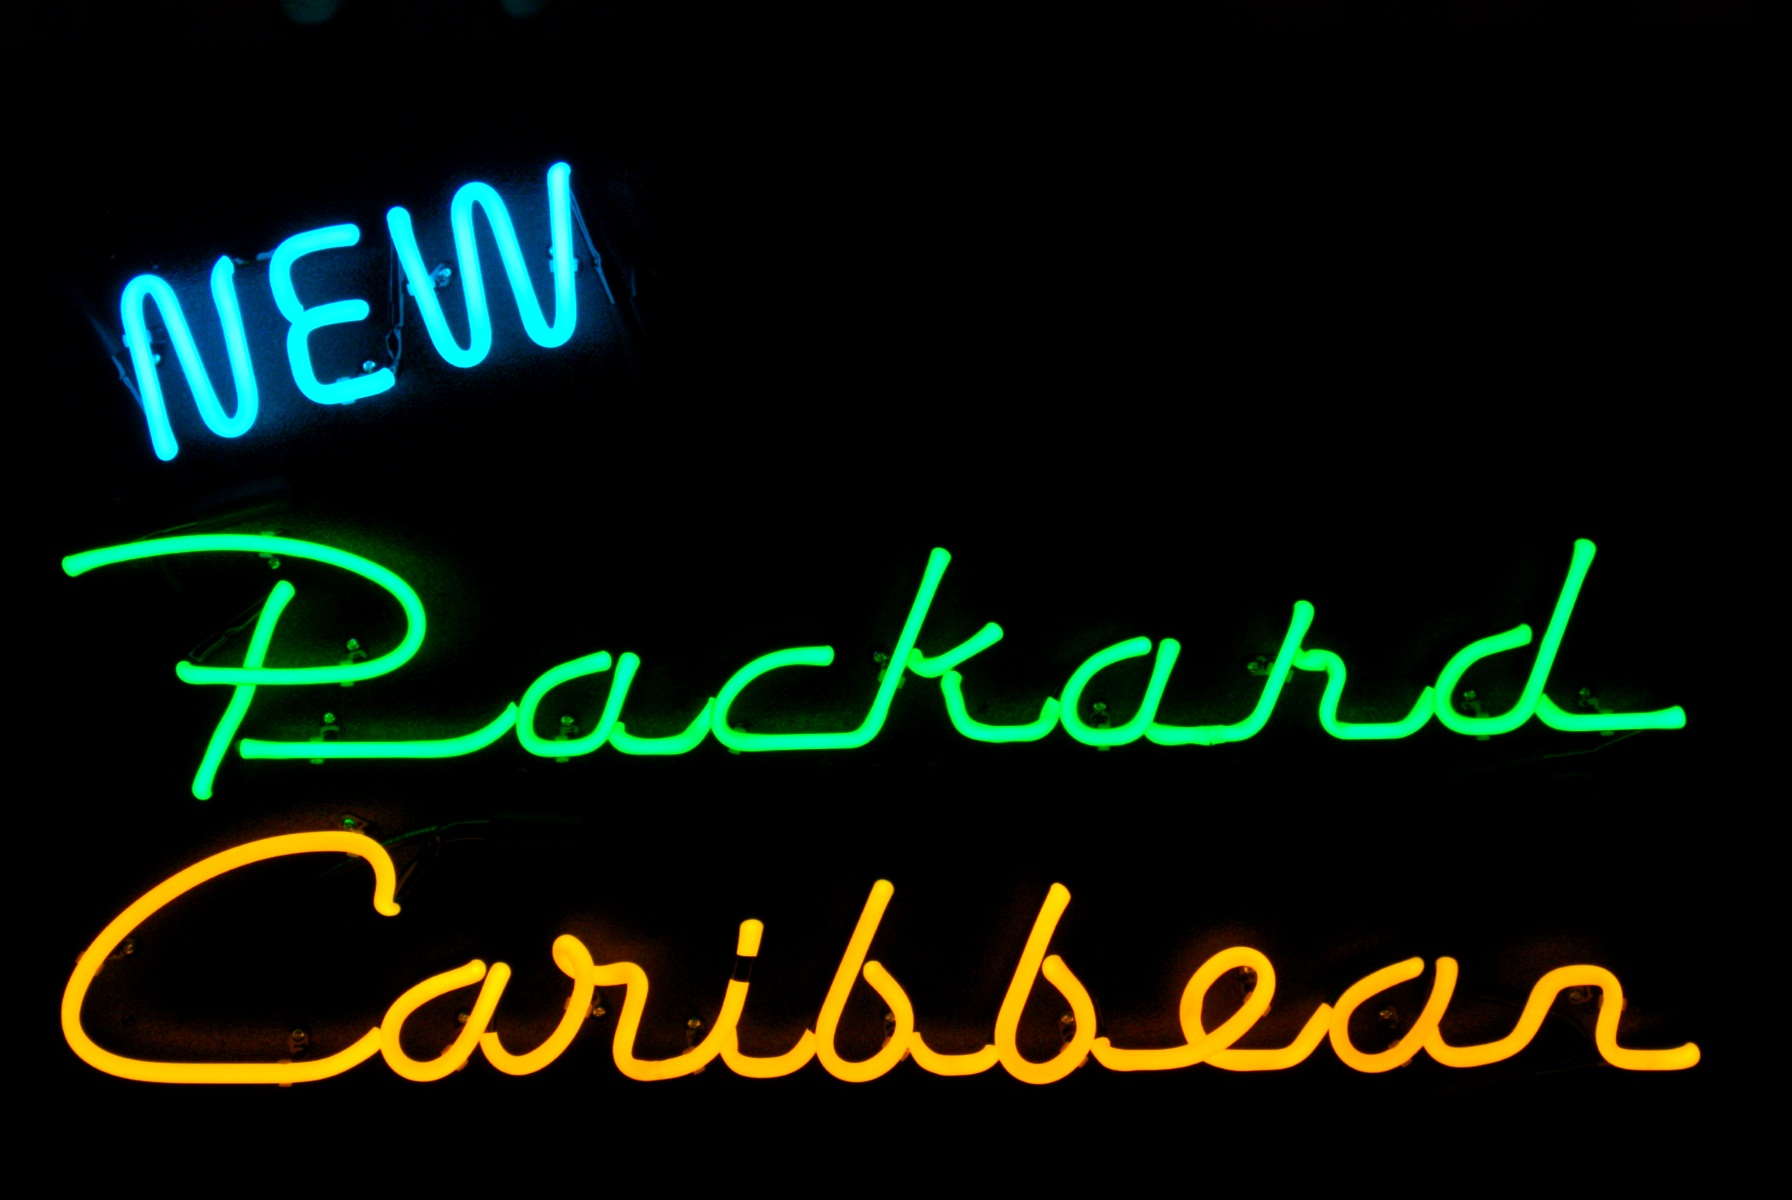 New Packard Caribbean Neon Sign.jpg